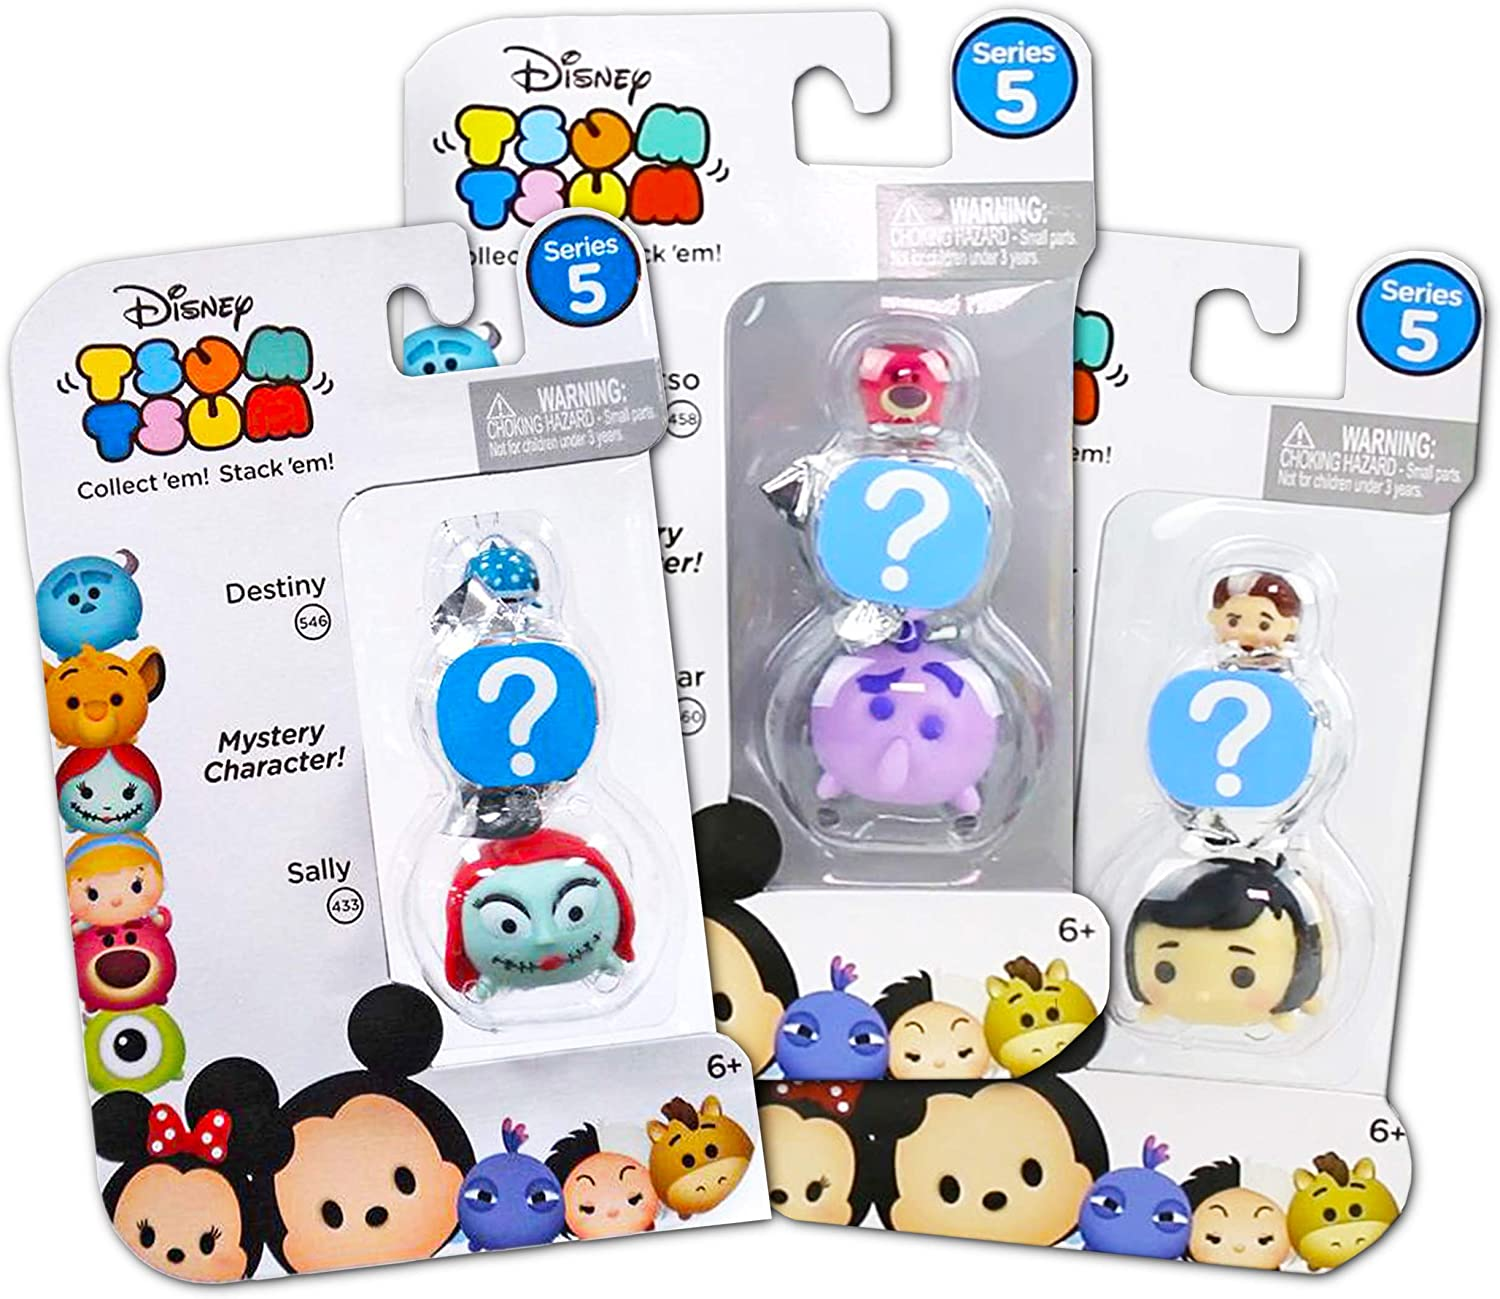 Tsum tsum Mystery Pack Series 5 Disney Unique 6 Blind Bags